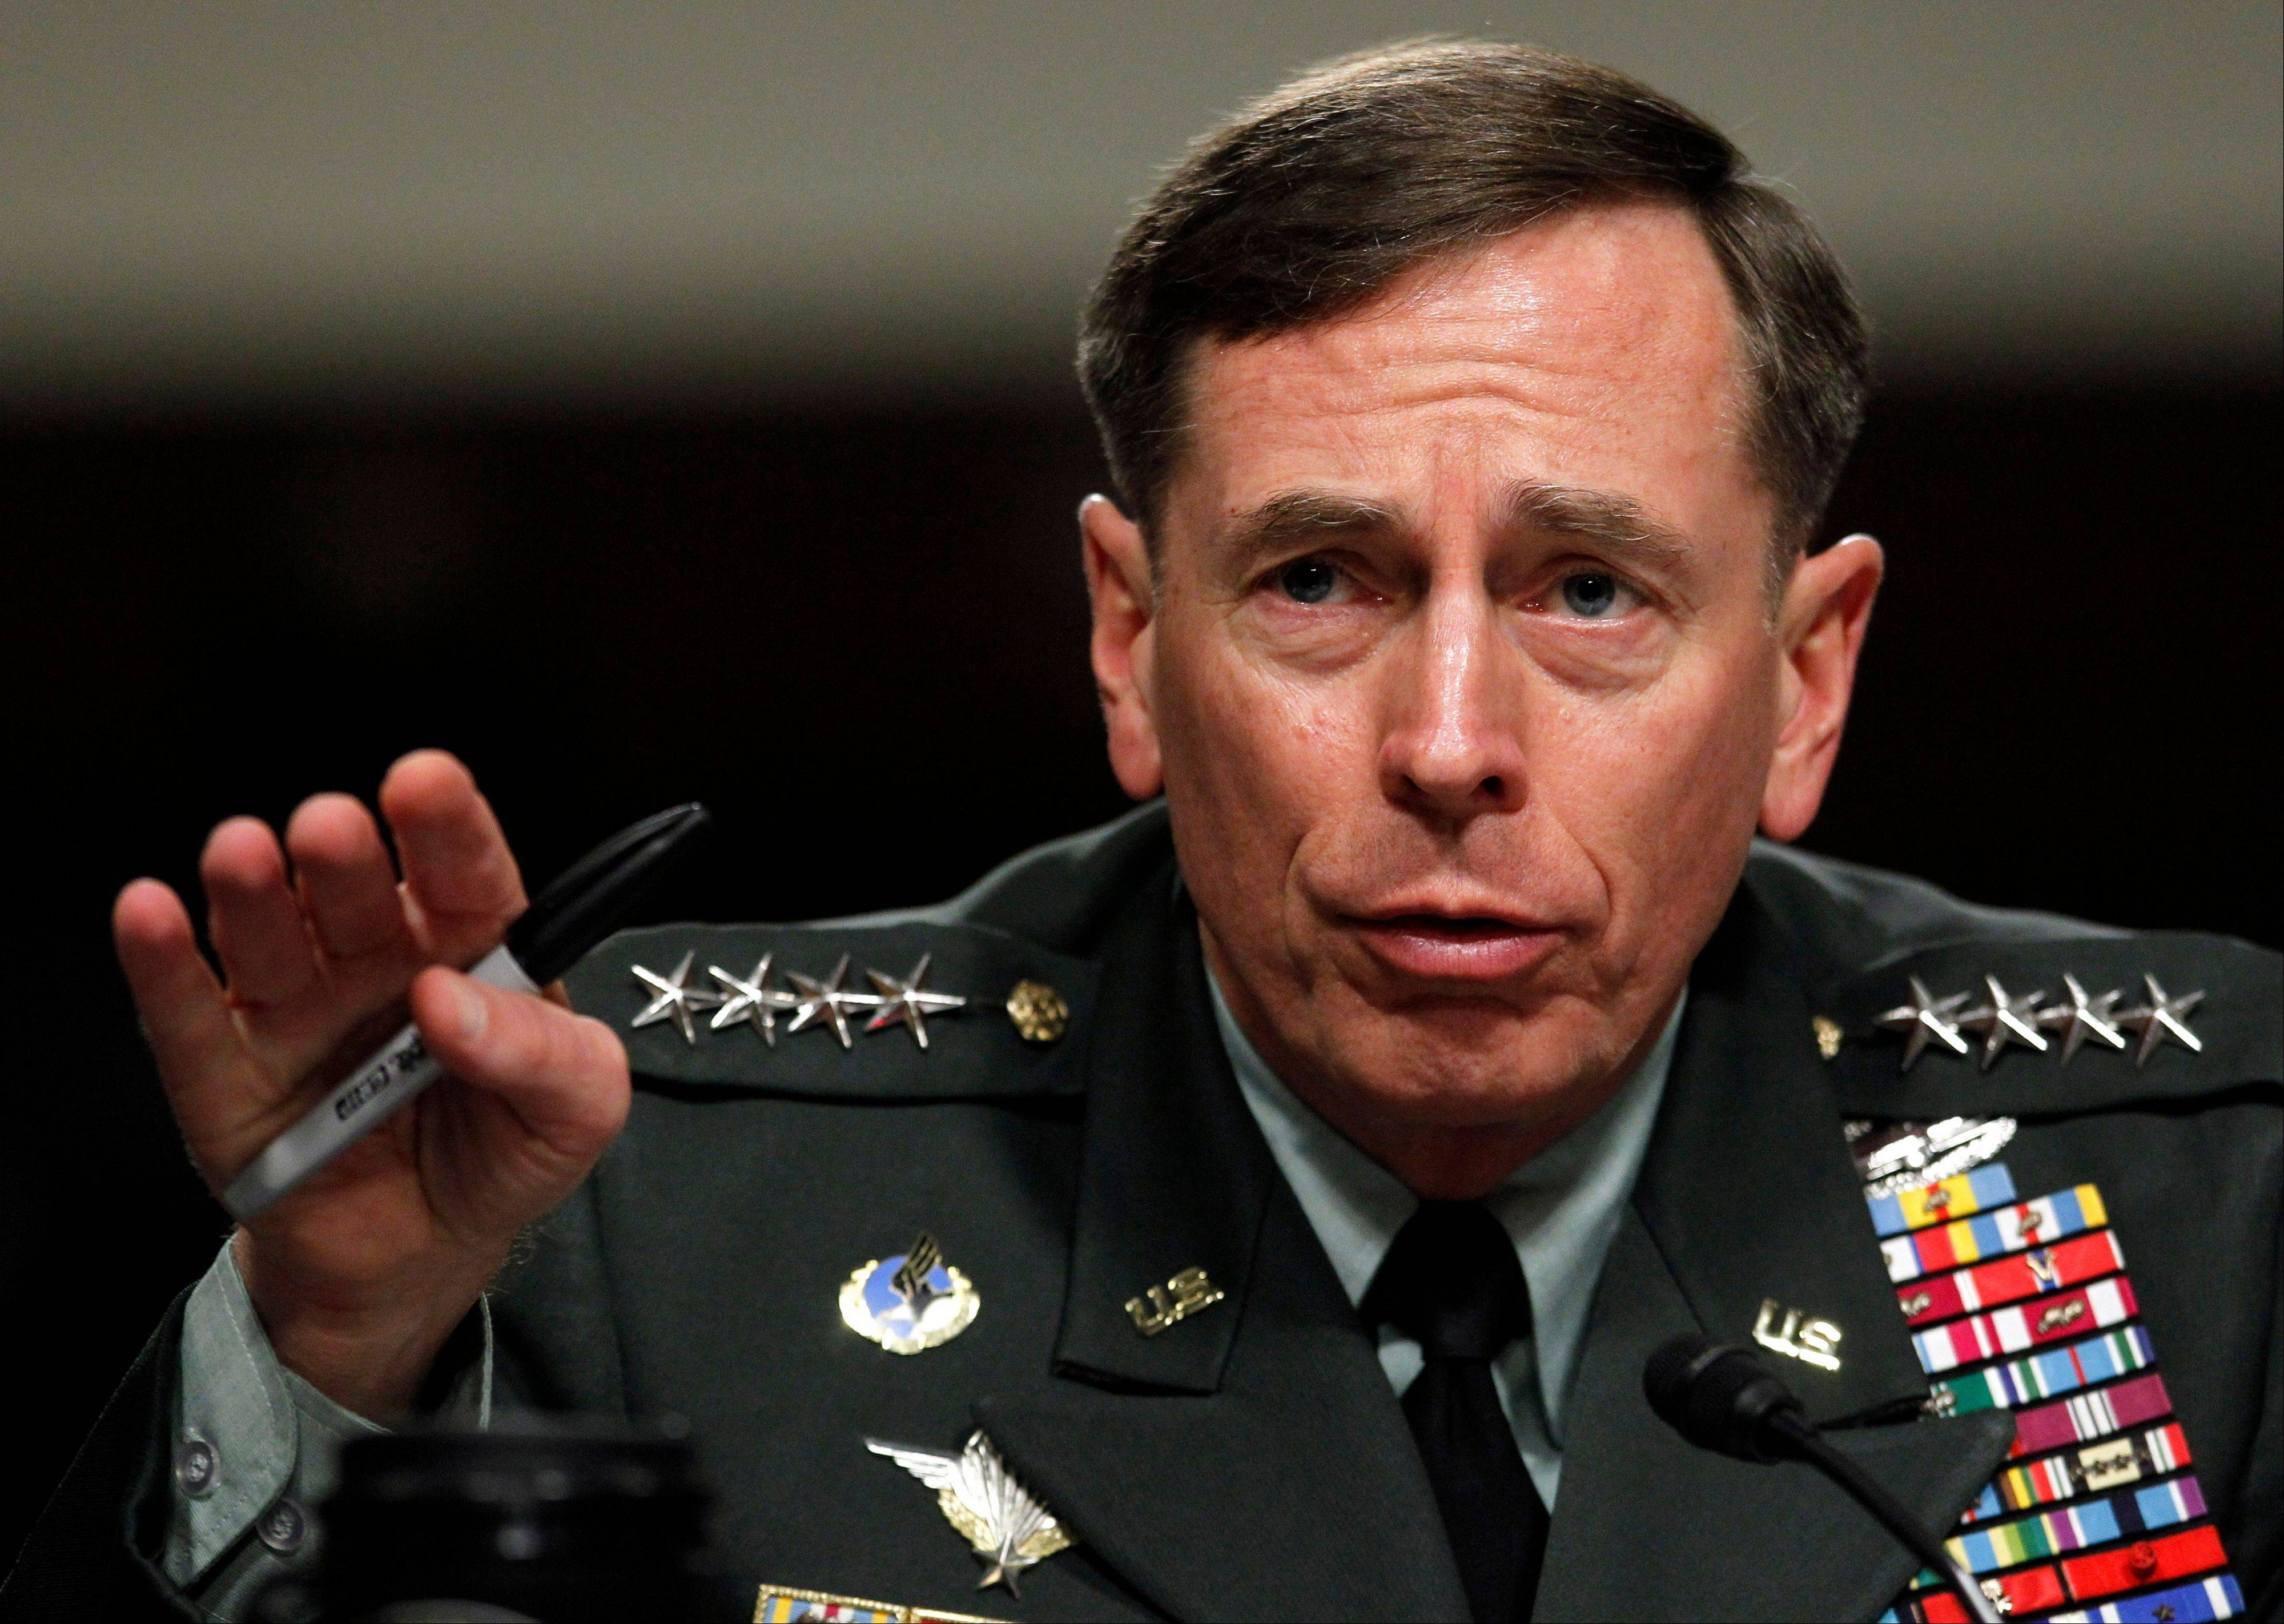 Former CIA Director David Petraeus has agreed to testify to Congress about the Sept. 11 attacks on the U.S. Consulate in Benghazi, Libya, that killed the U.S. ambassador and three other Americans.